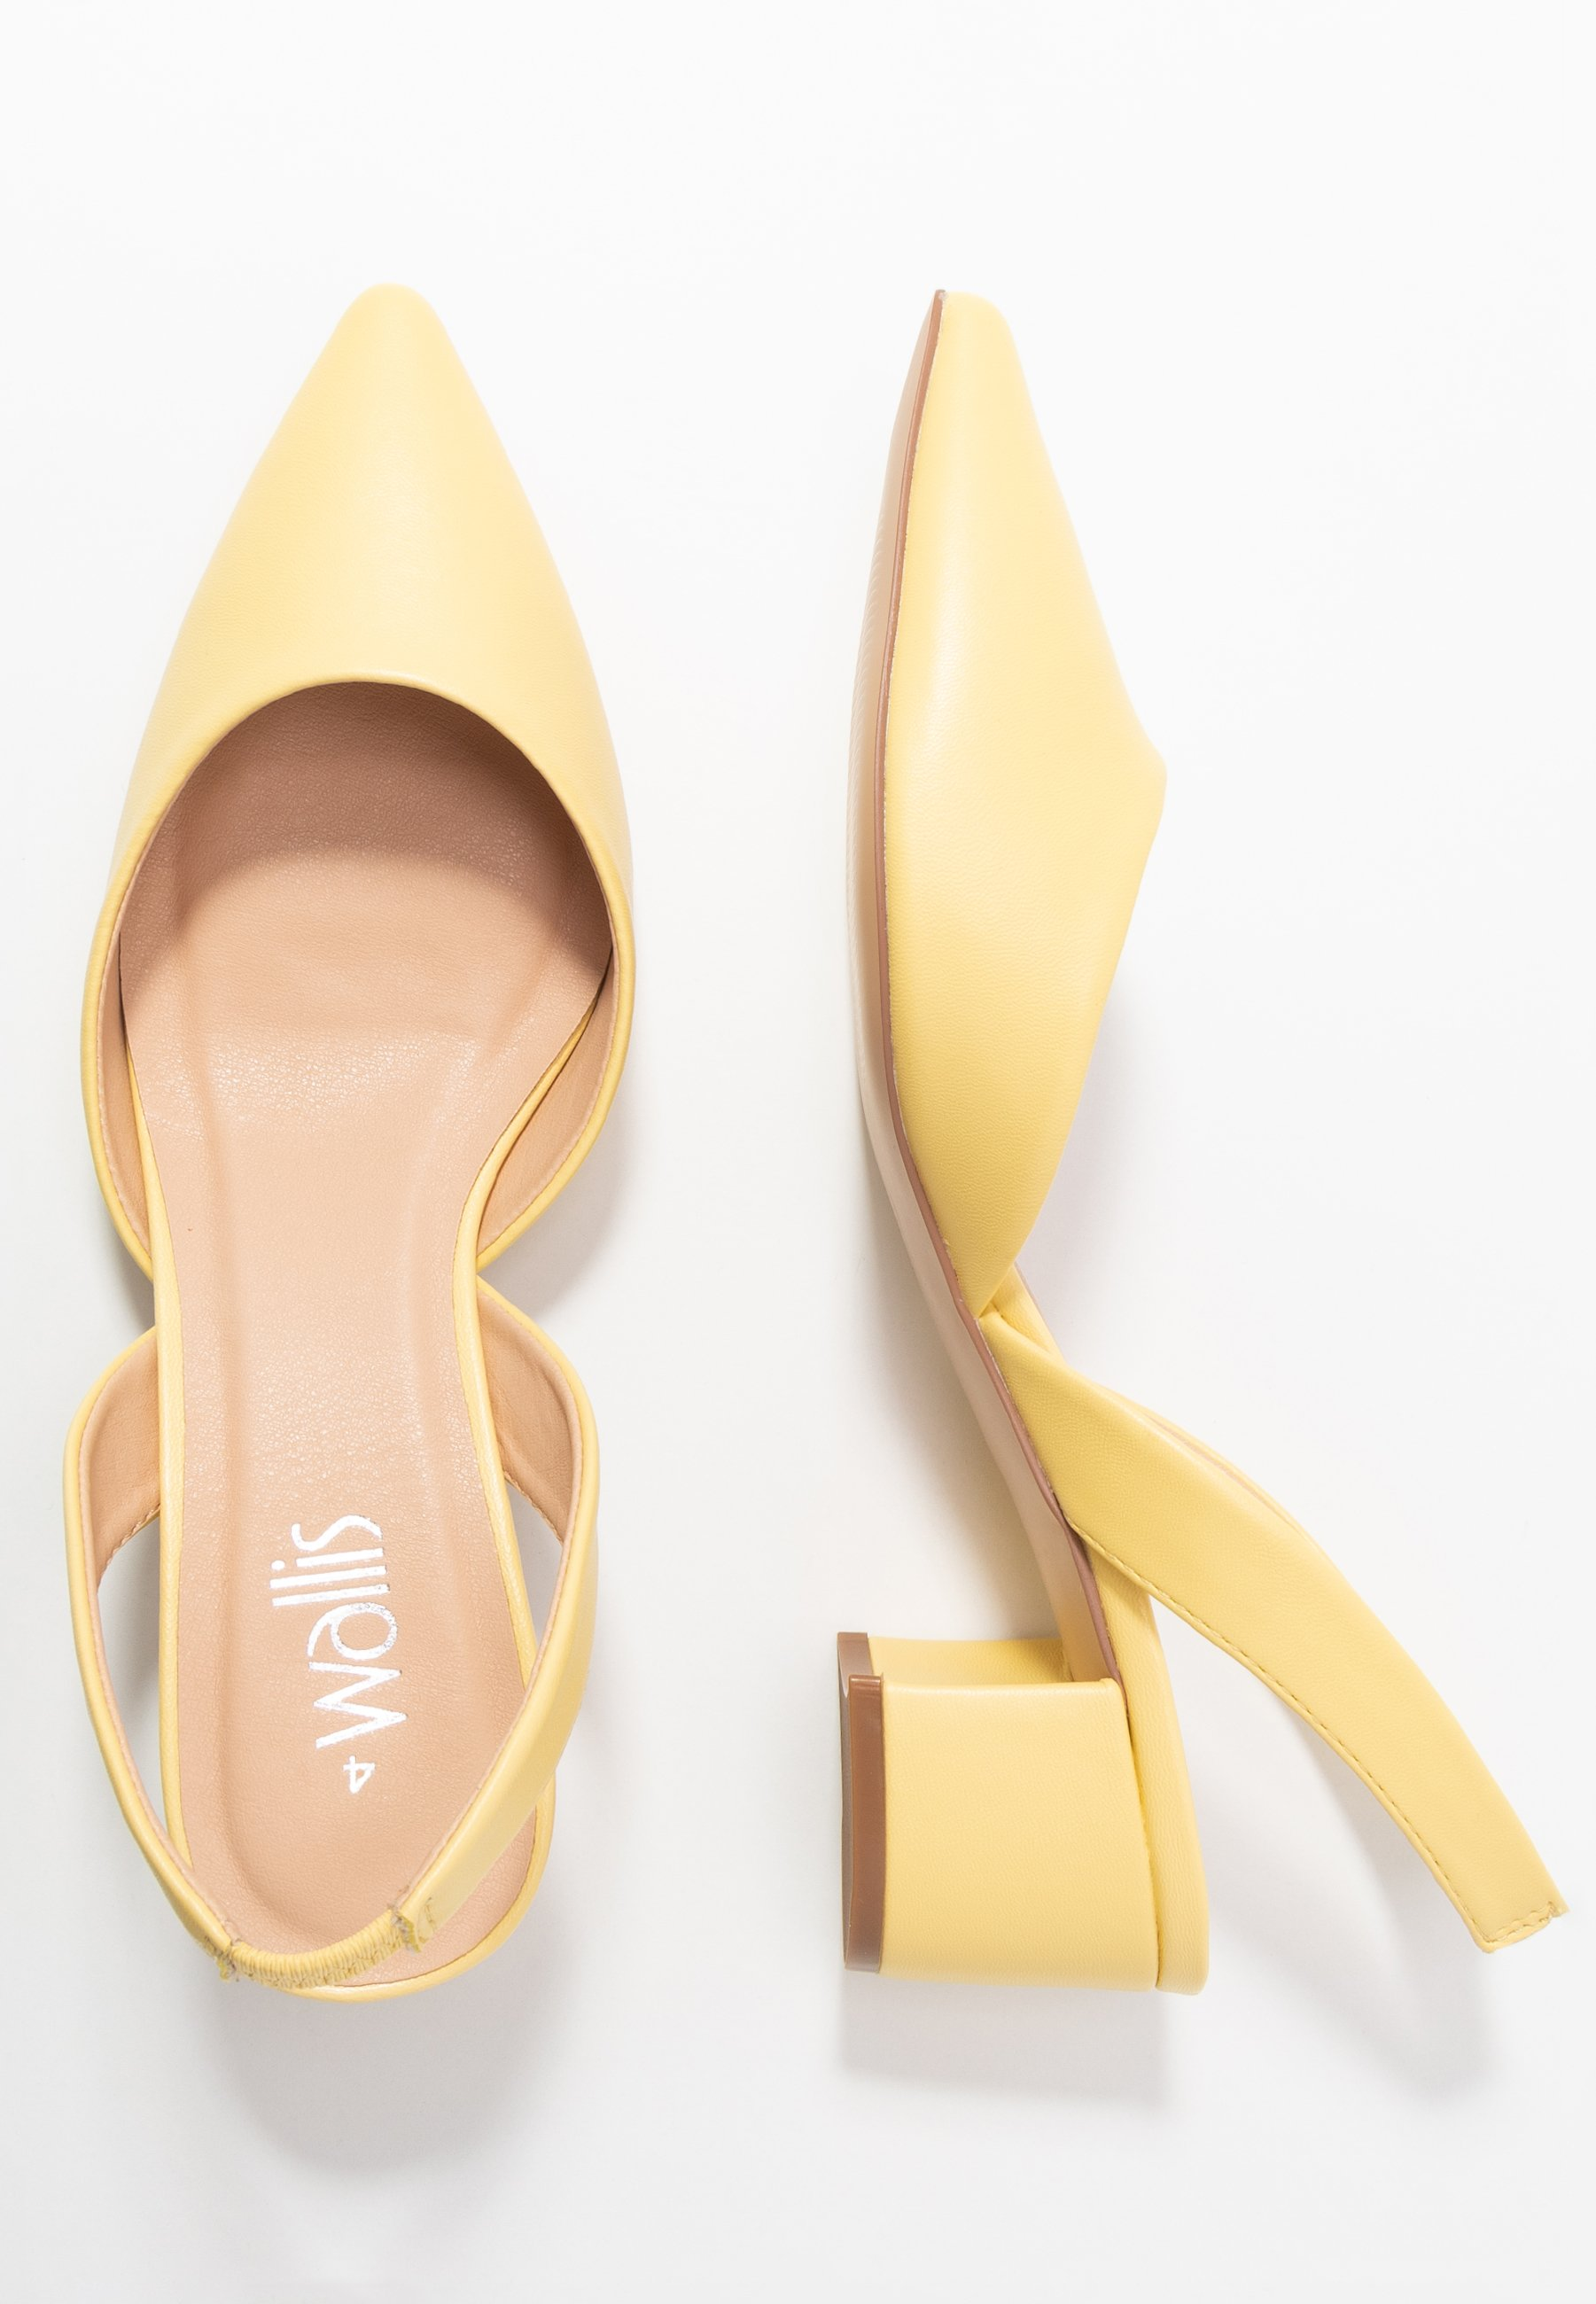 Wallis Custard - Pumps Lemon